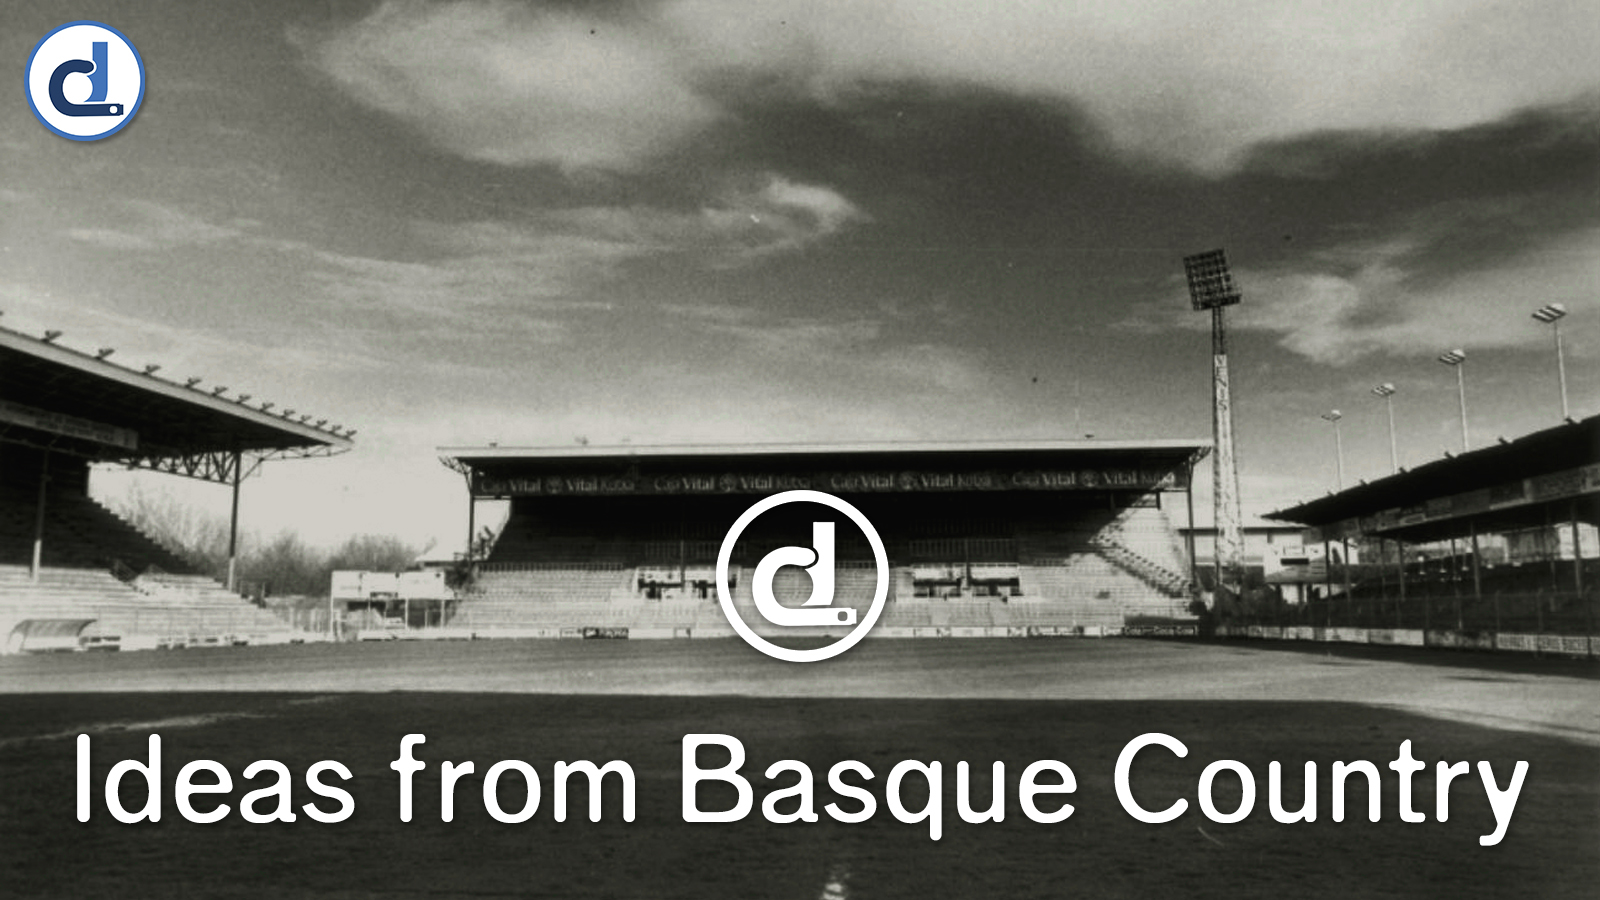 Blog We are Dotore - Ideas from de Basque Country